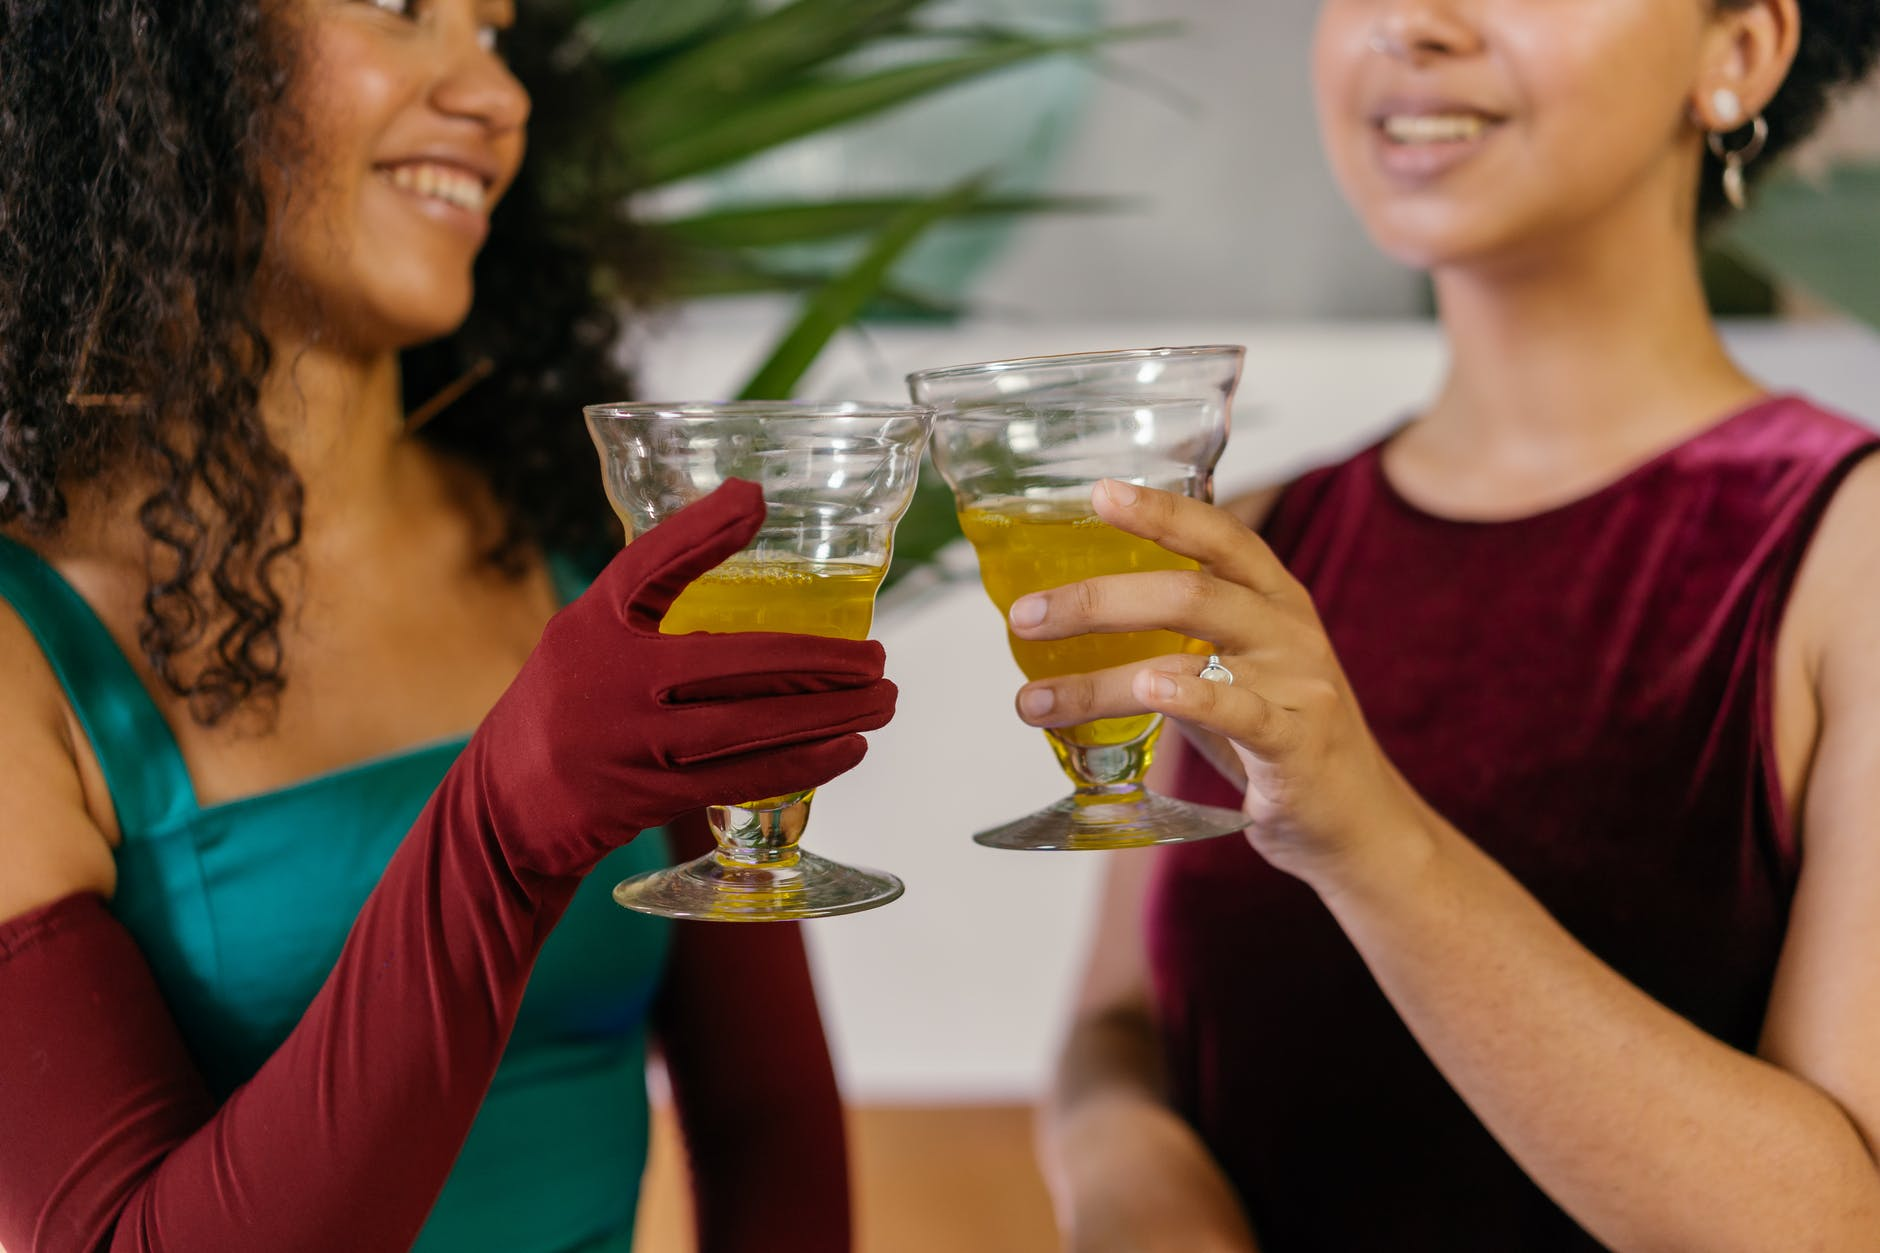 Women cheering their drinking glasses